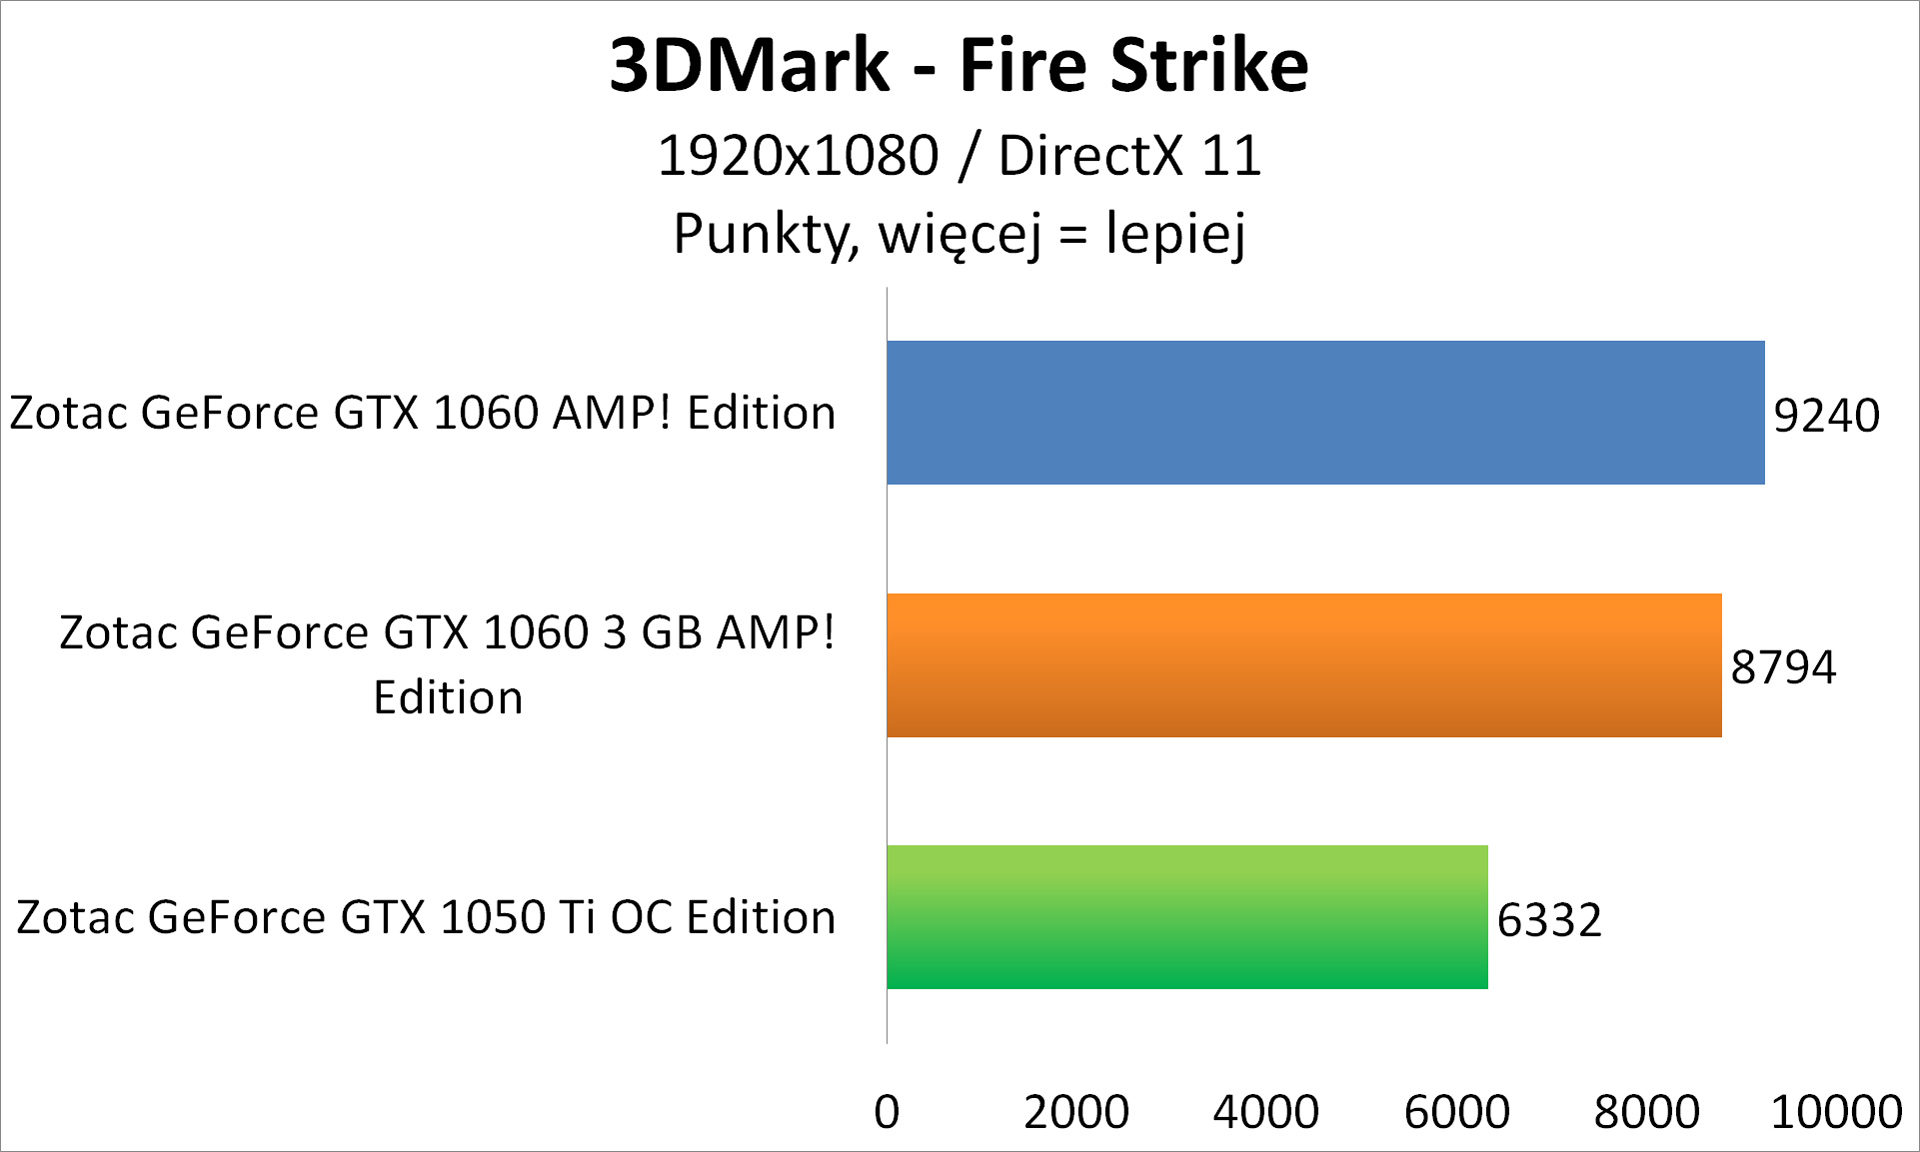 Zotac GeForce GTX 1050 Ti OC Edition - 3DMark - Fire Strike